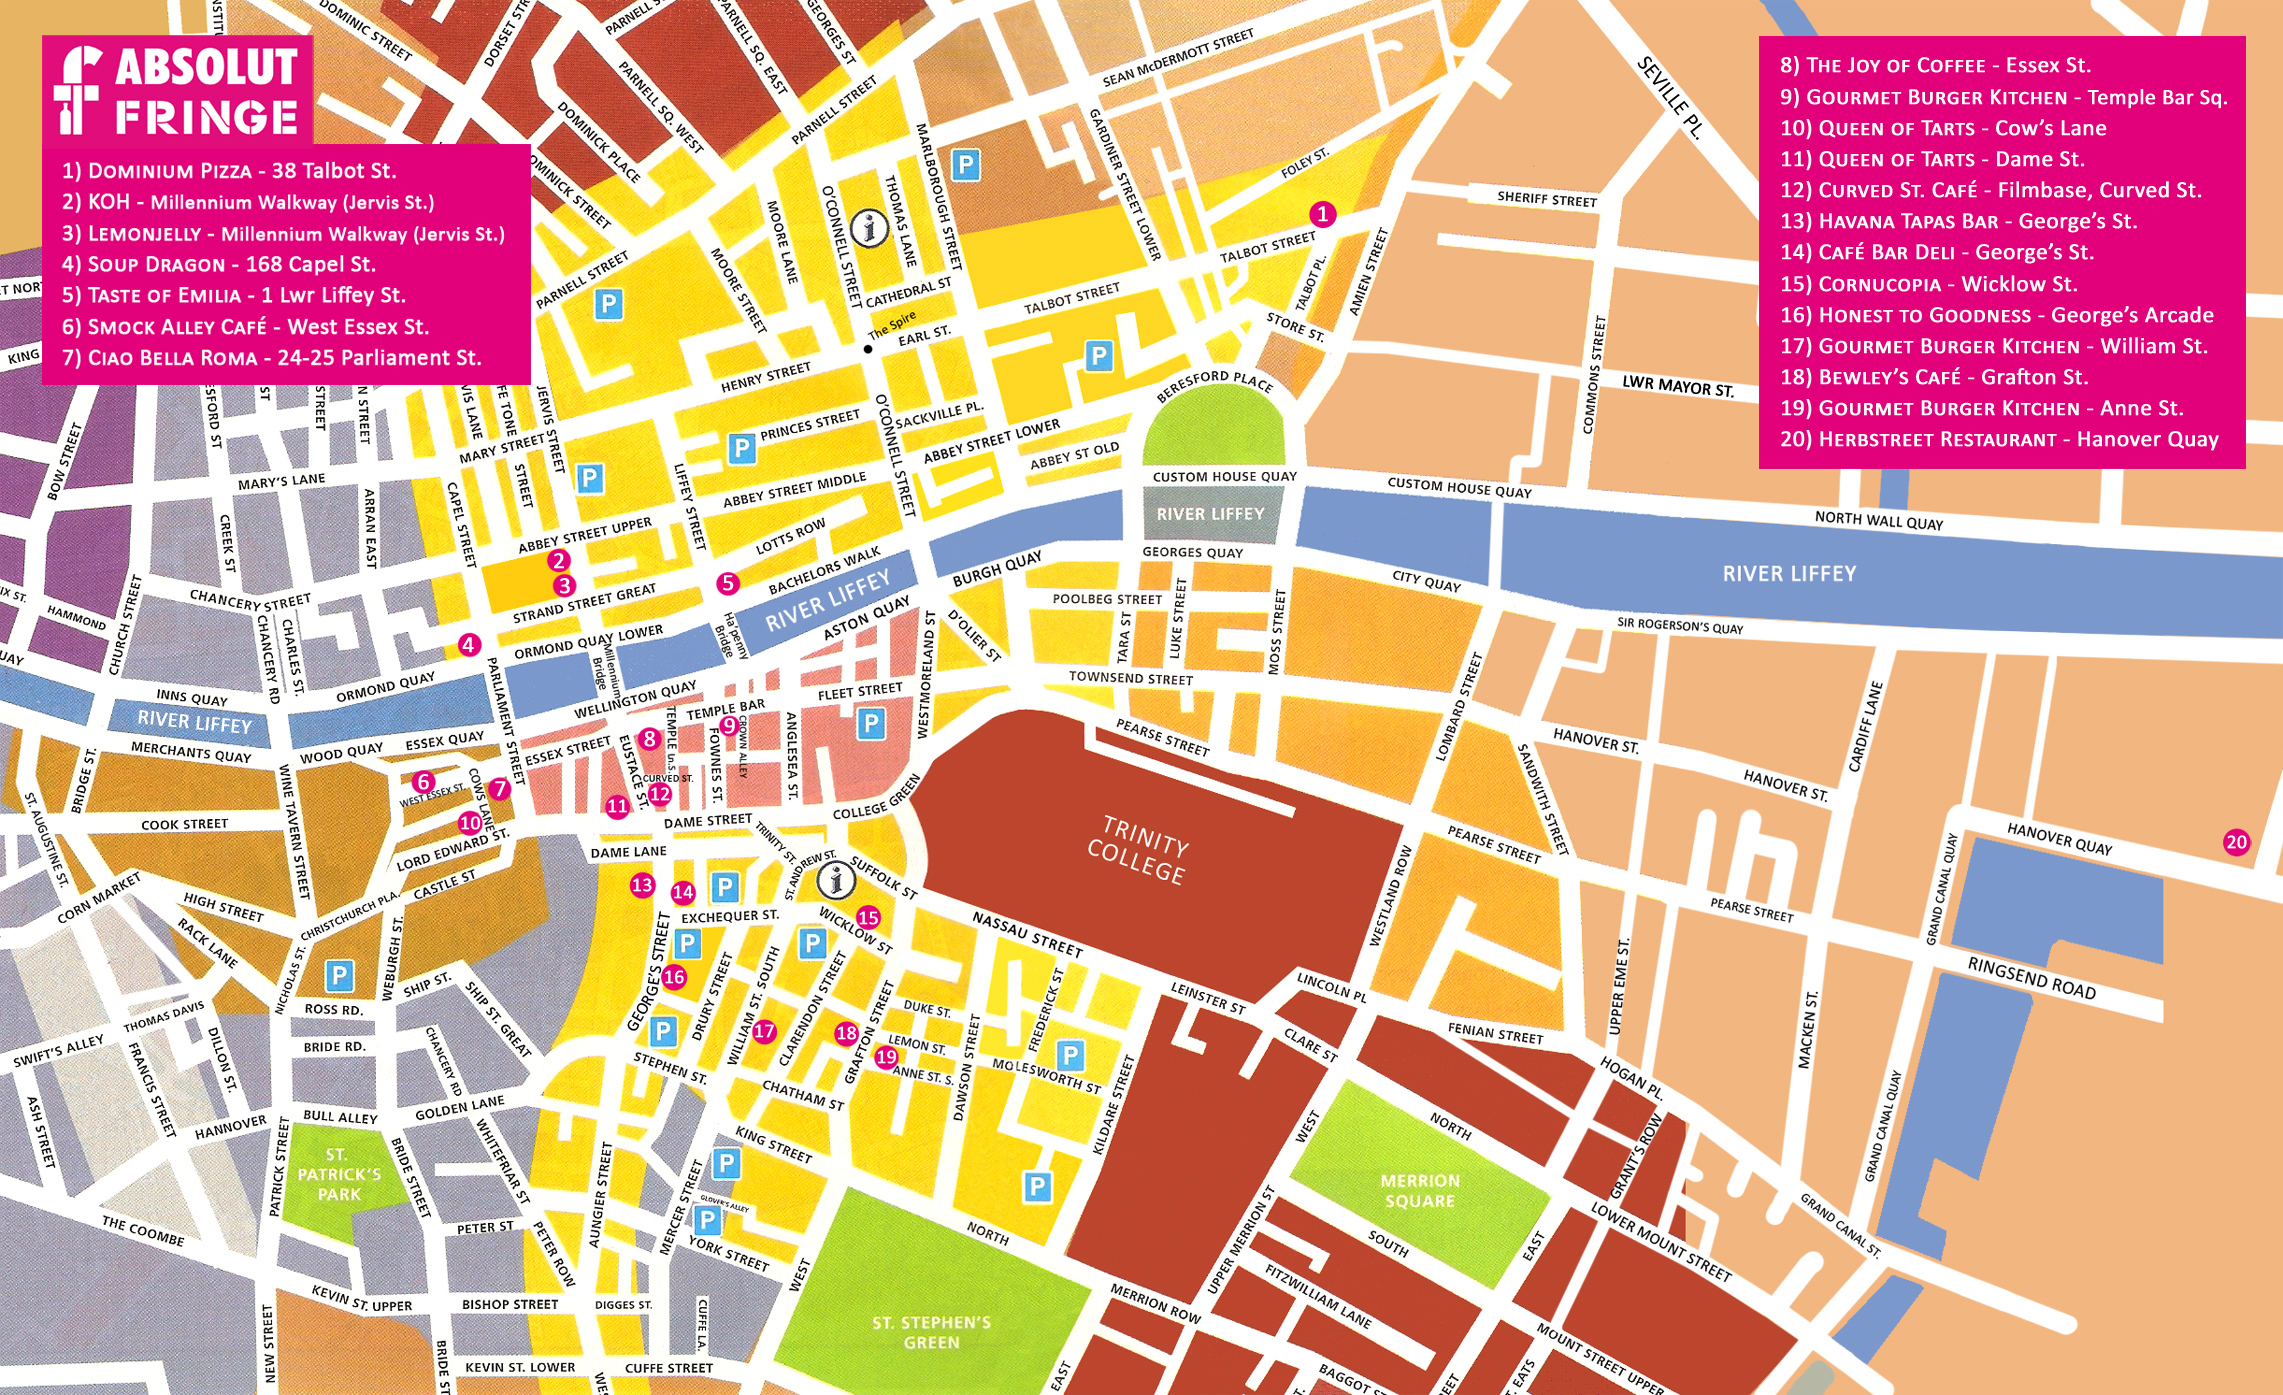 Dublin Restaurants Map Trinity College Dublin mappery – Tourist Map Dublin